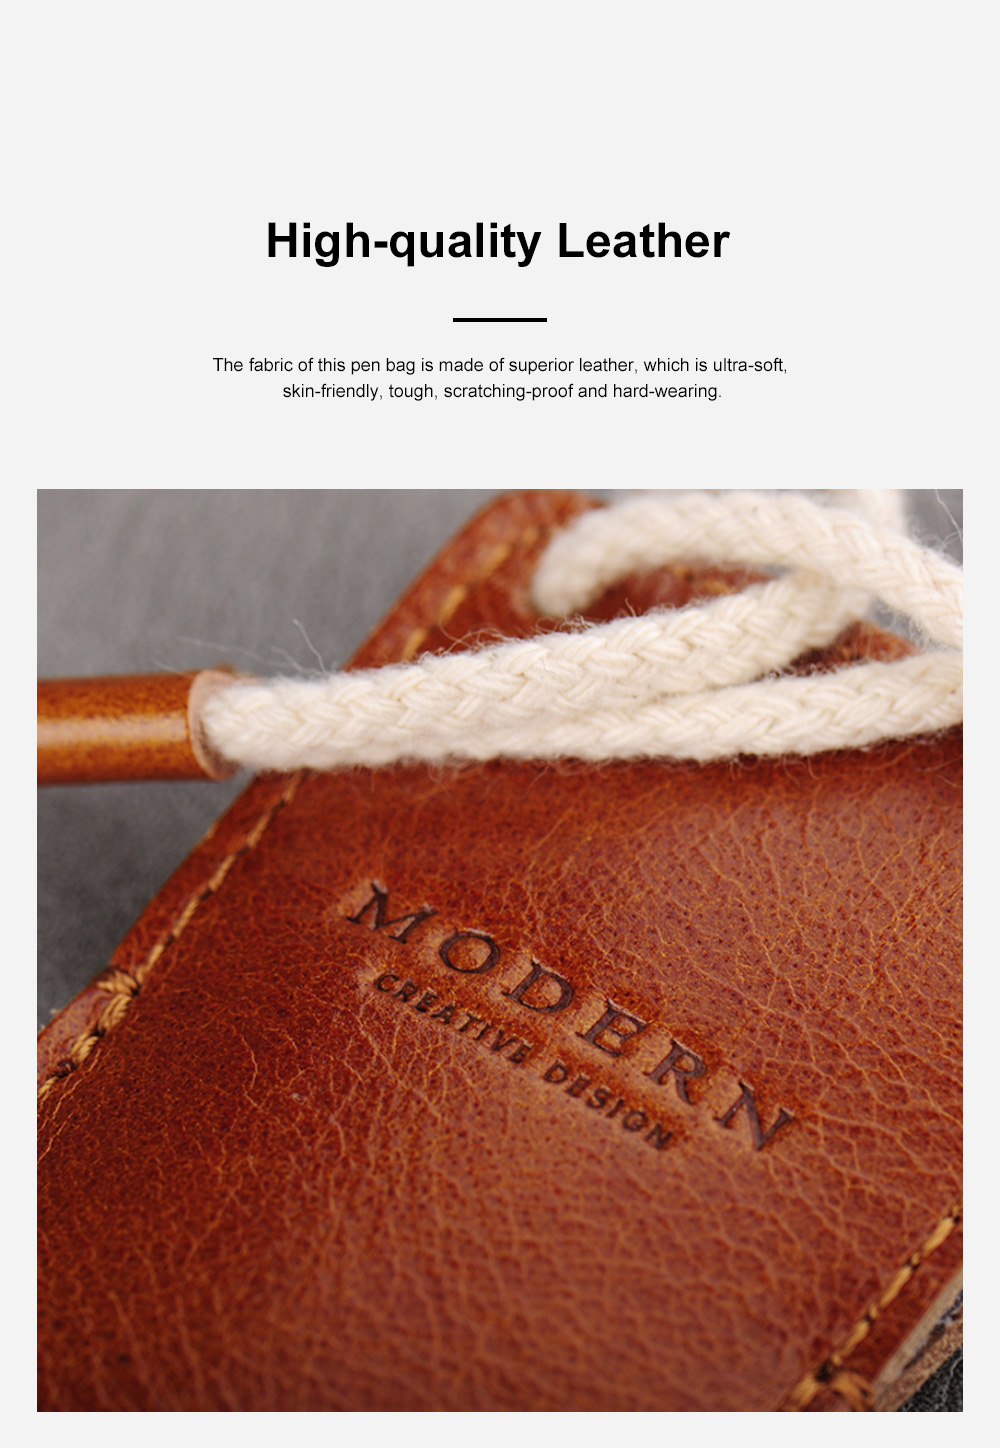 Minimalist Vintage Business Tough Soft Leather Pen Bag Pencil Case with Delicate Stitching Smooth Wool Felt Lining 5